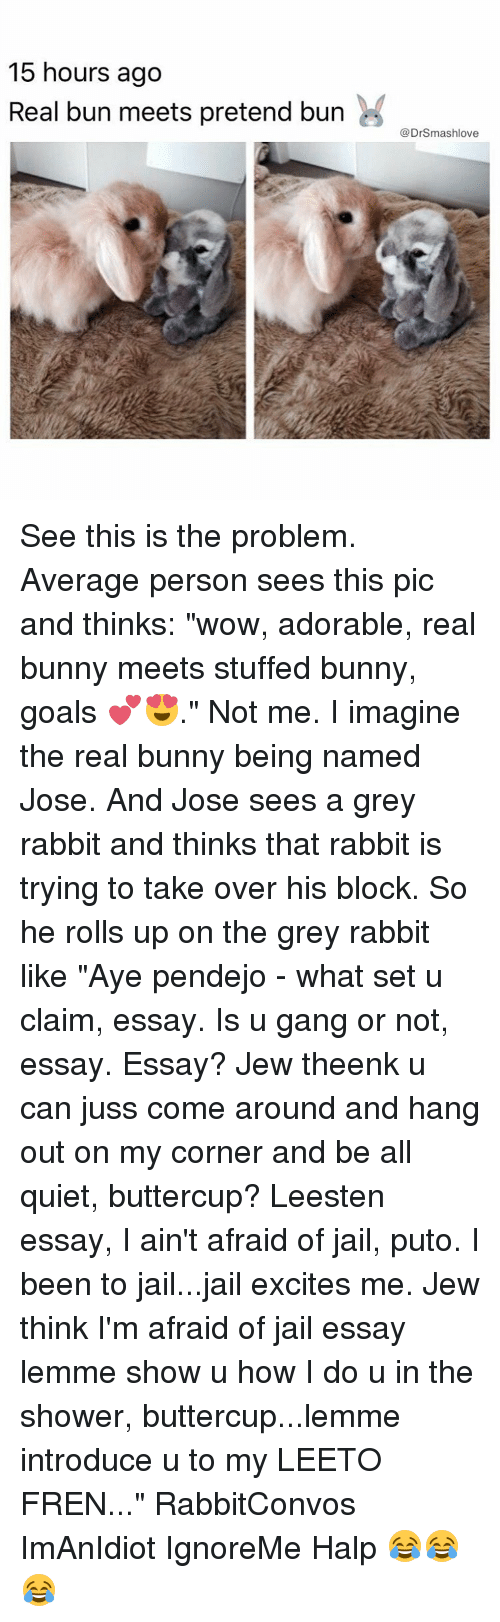 "Averagers: 15 hours ago  Real bun meets pretend burn  @DrSmashlove See this is the problem. Average person sees this pic and thinks: ""wow, adorable, real bunny meets stuffed bunny, goals 💕😍."" Not me. I imagine the real bunny being named Jose. And Jose sees a grey rabbit and thinks that rabbit is trying to take over his block. So he rolls up on the grey rabbit like ""Aye pendejo - what set u claim, essay. Is u gang or not, essay. Essay? Jew theenk u can juss come around and hang out on my corner and be all quiet, buttercup? Leesten essay, I ain't afraid of jail, puto. I been to jail...jail excites me. Jew think I'm afraid of jail essay lemme show u how I do u in the shower, buttercup...lemme introduce u to my LEETO FREN..."" RabbitConvos ImAnIdiot IgnoreMe Halp 😂😂😂"